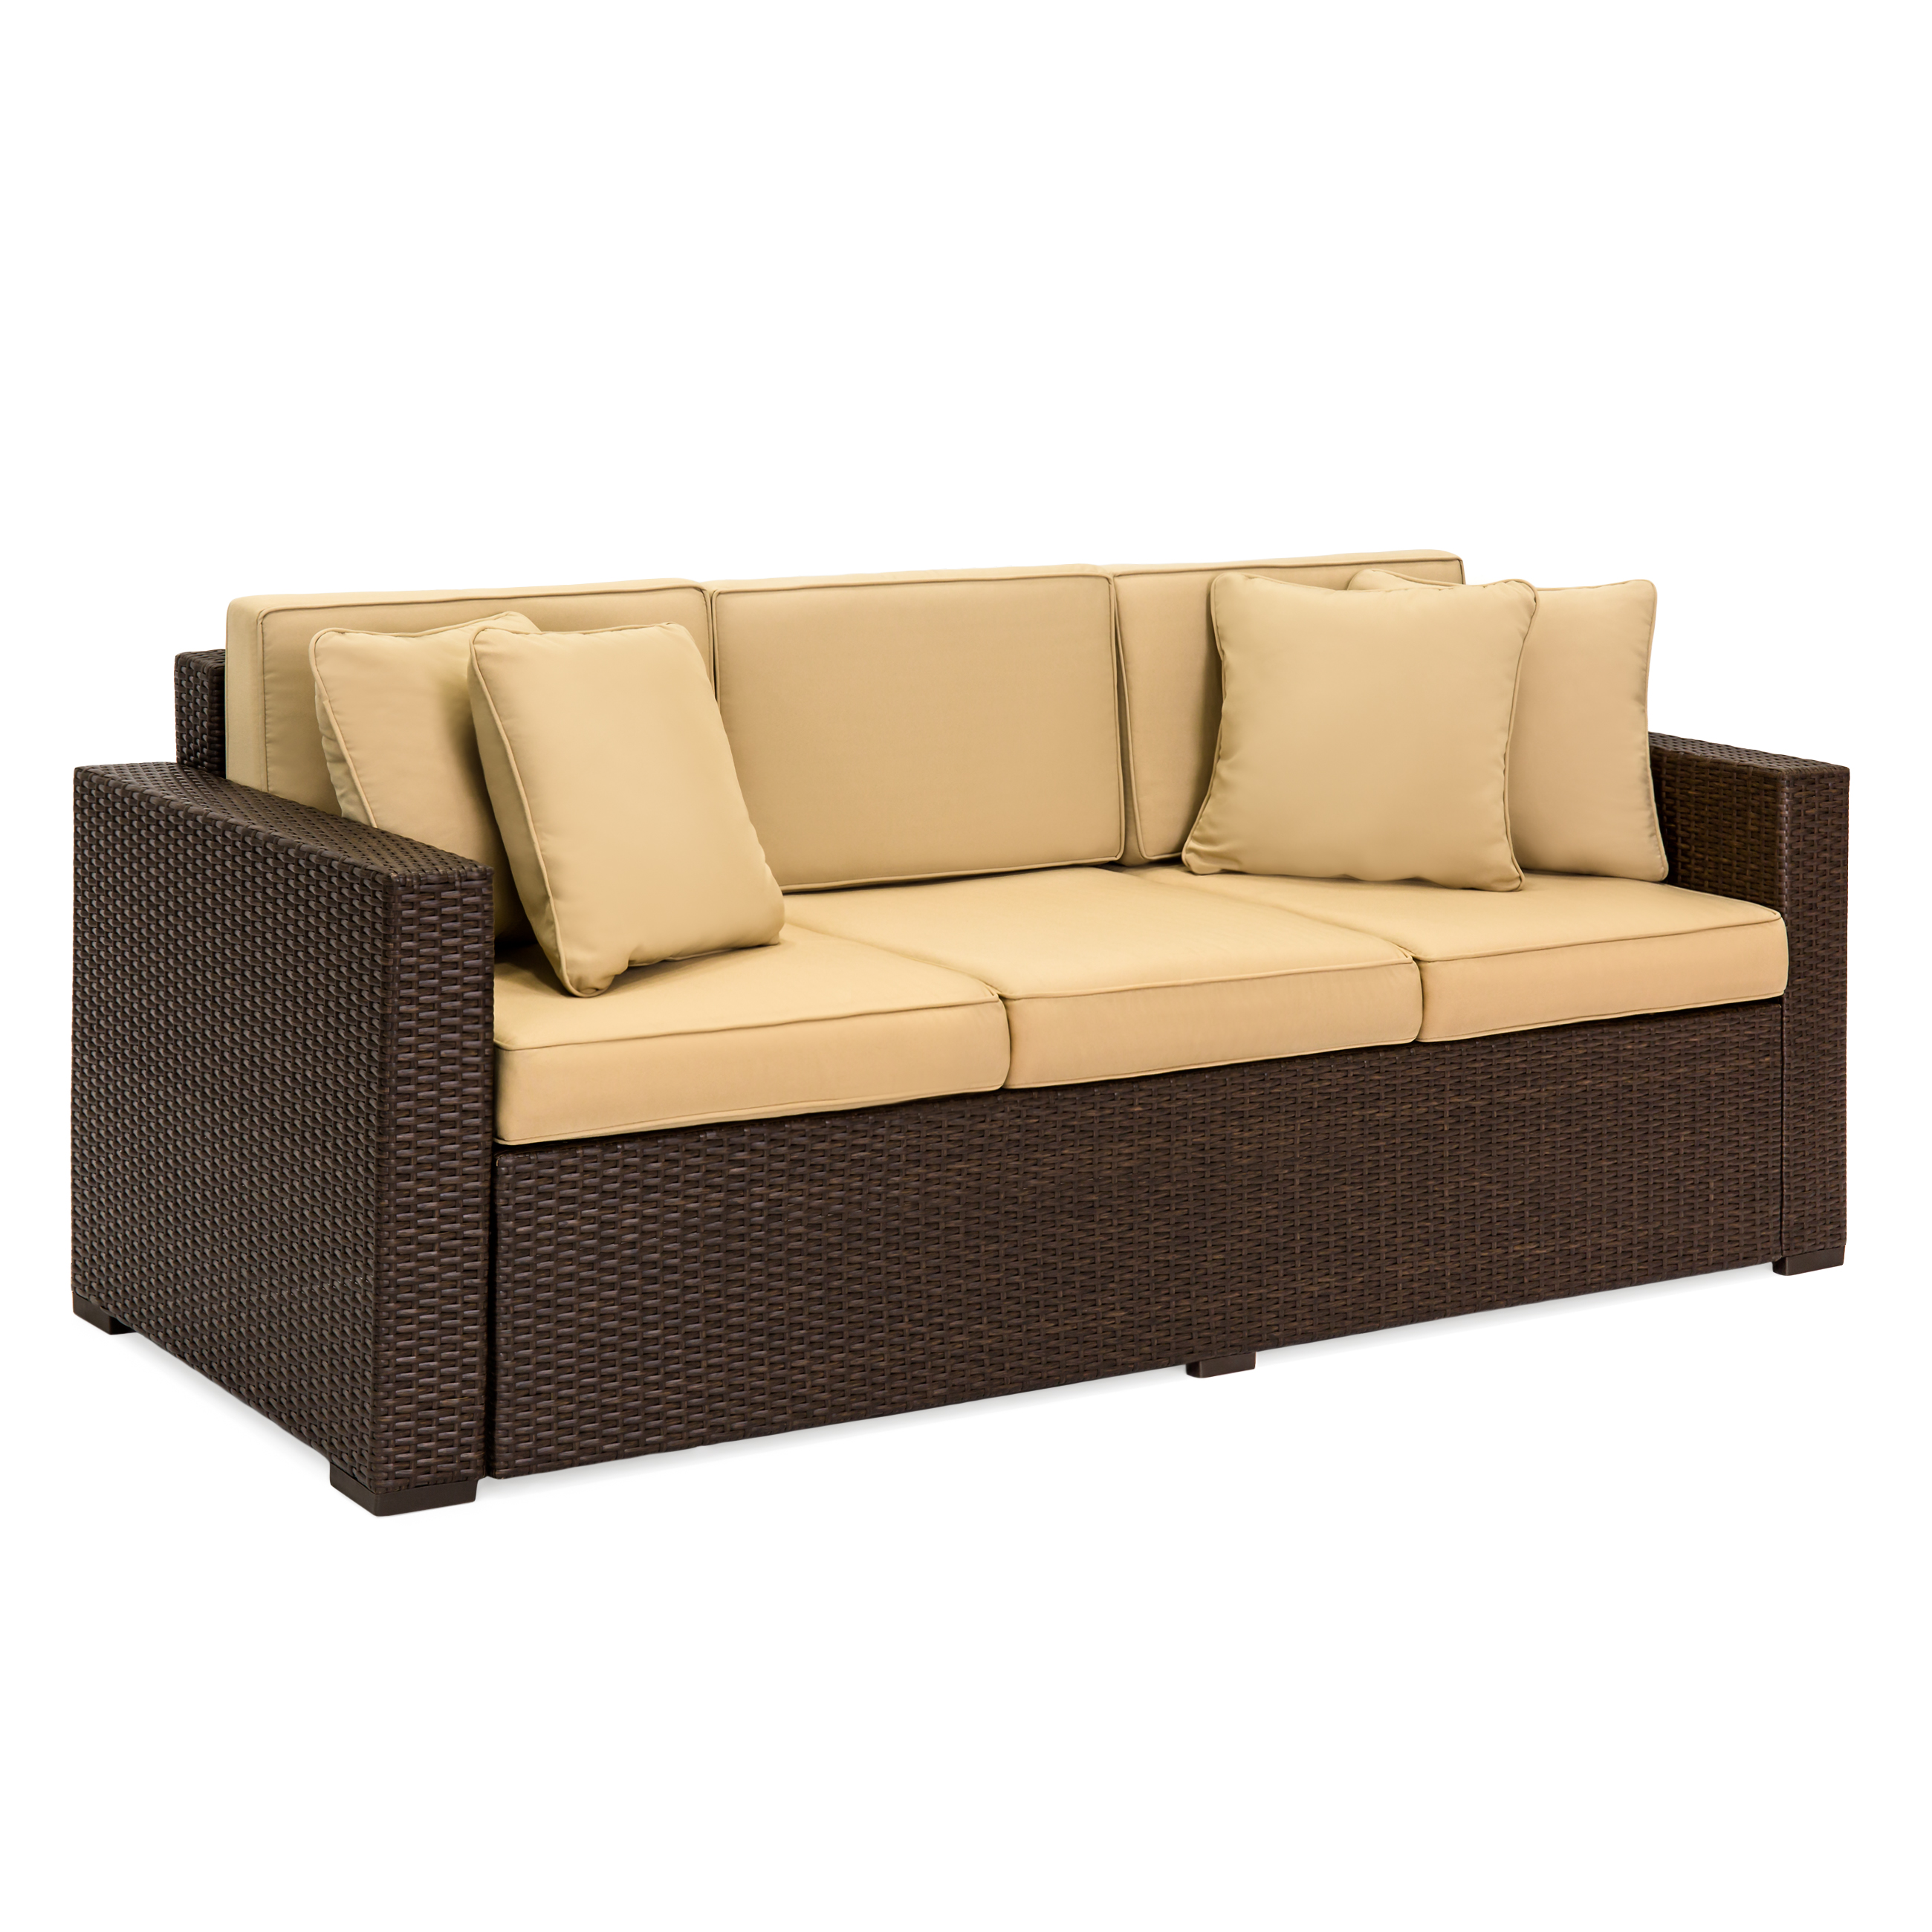 Best Choice Products 3-Seat Outdoor Wicker Sofa Couch Patio Furniture w  Steel Frame, Removable Cushions by Best Choice Products